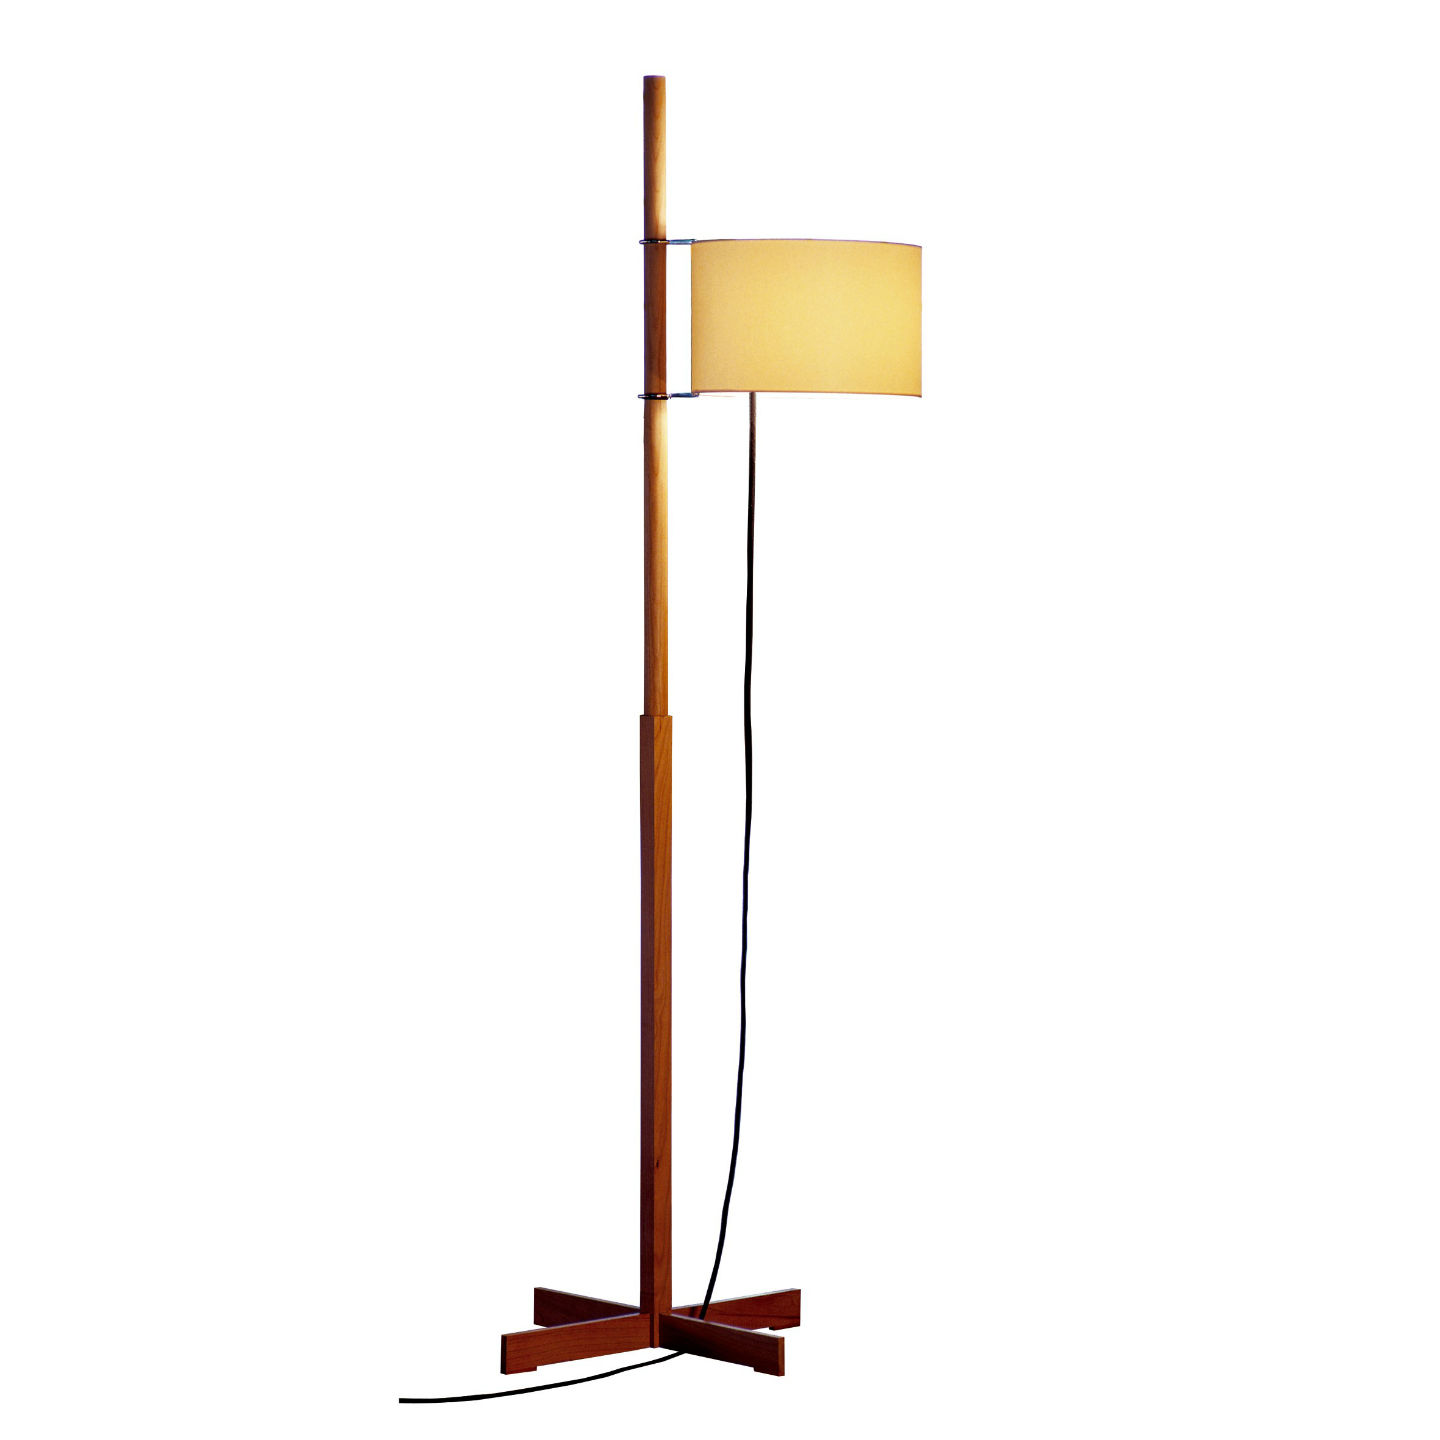 TMM (Accessory) lampshade for lámpara of Floor Lamp - Cartulina beige